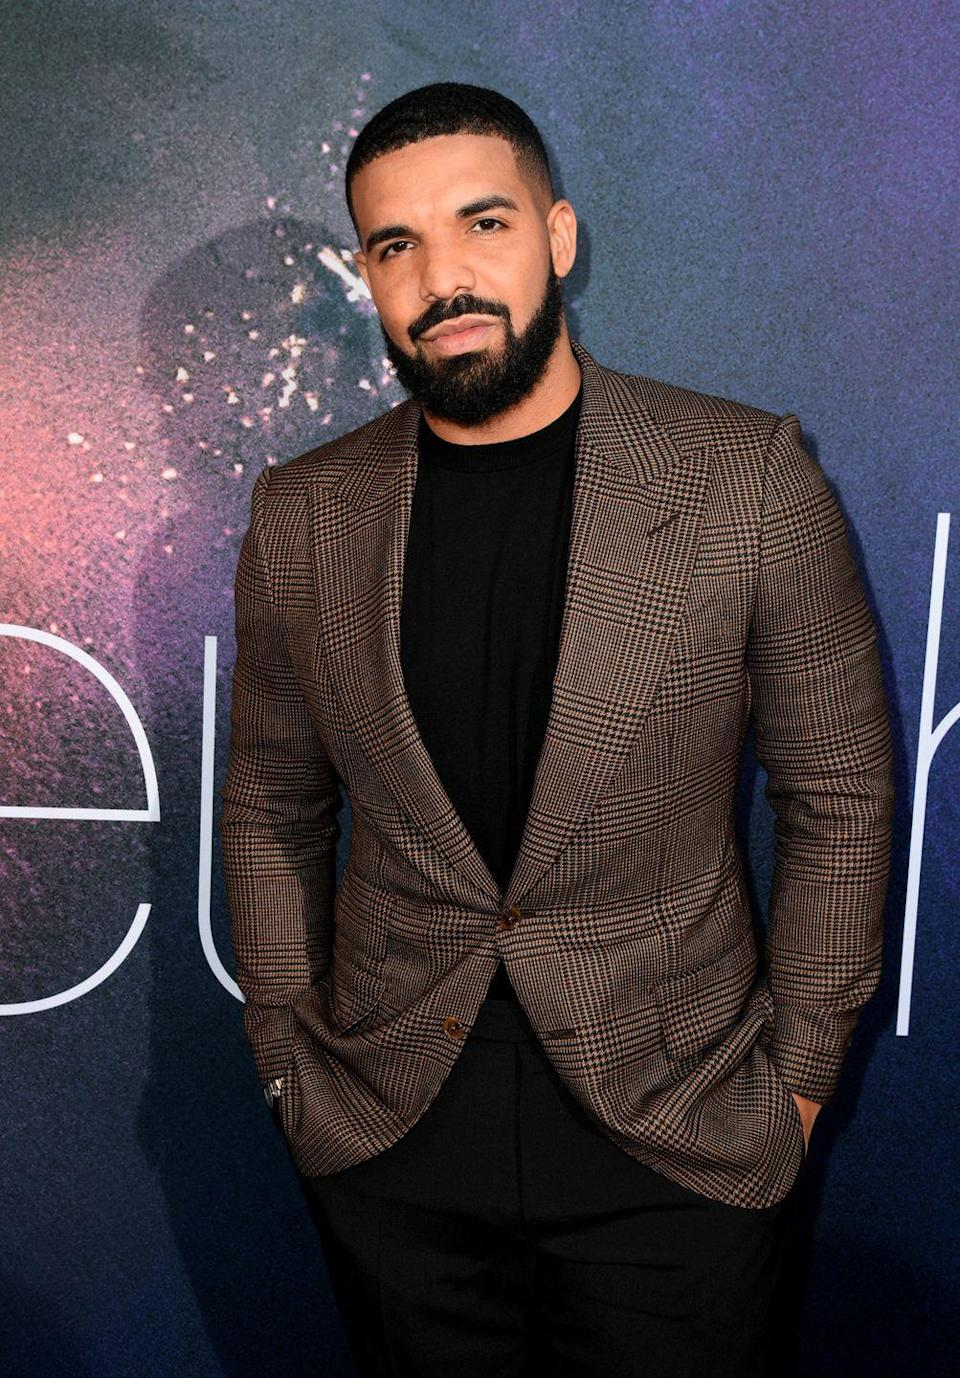 <p>Rapper Drake was born Aubrey Drake Graham in Canada on 10-24-1986. </p><p>Also on this day: <br>Shenae Grimes <br>Kevin Kline <br></p>